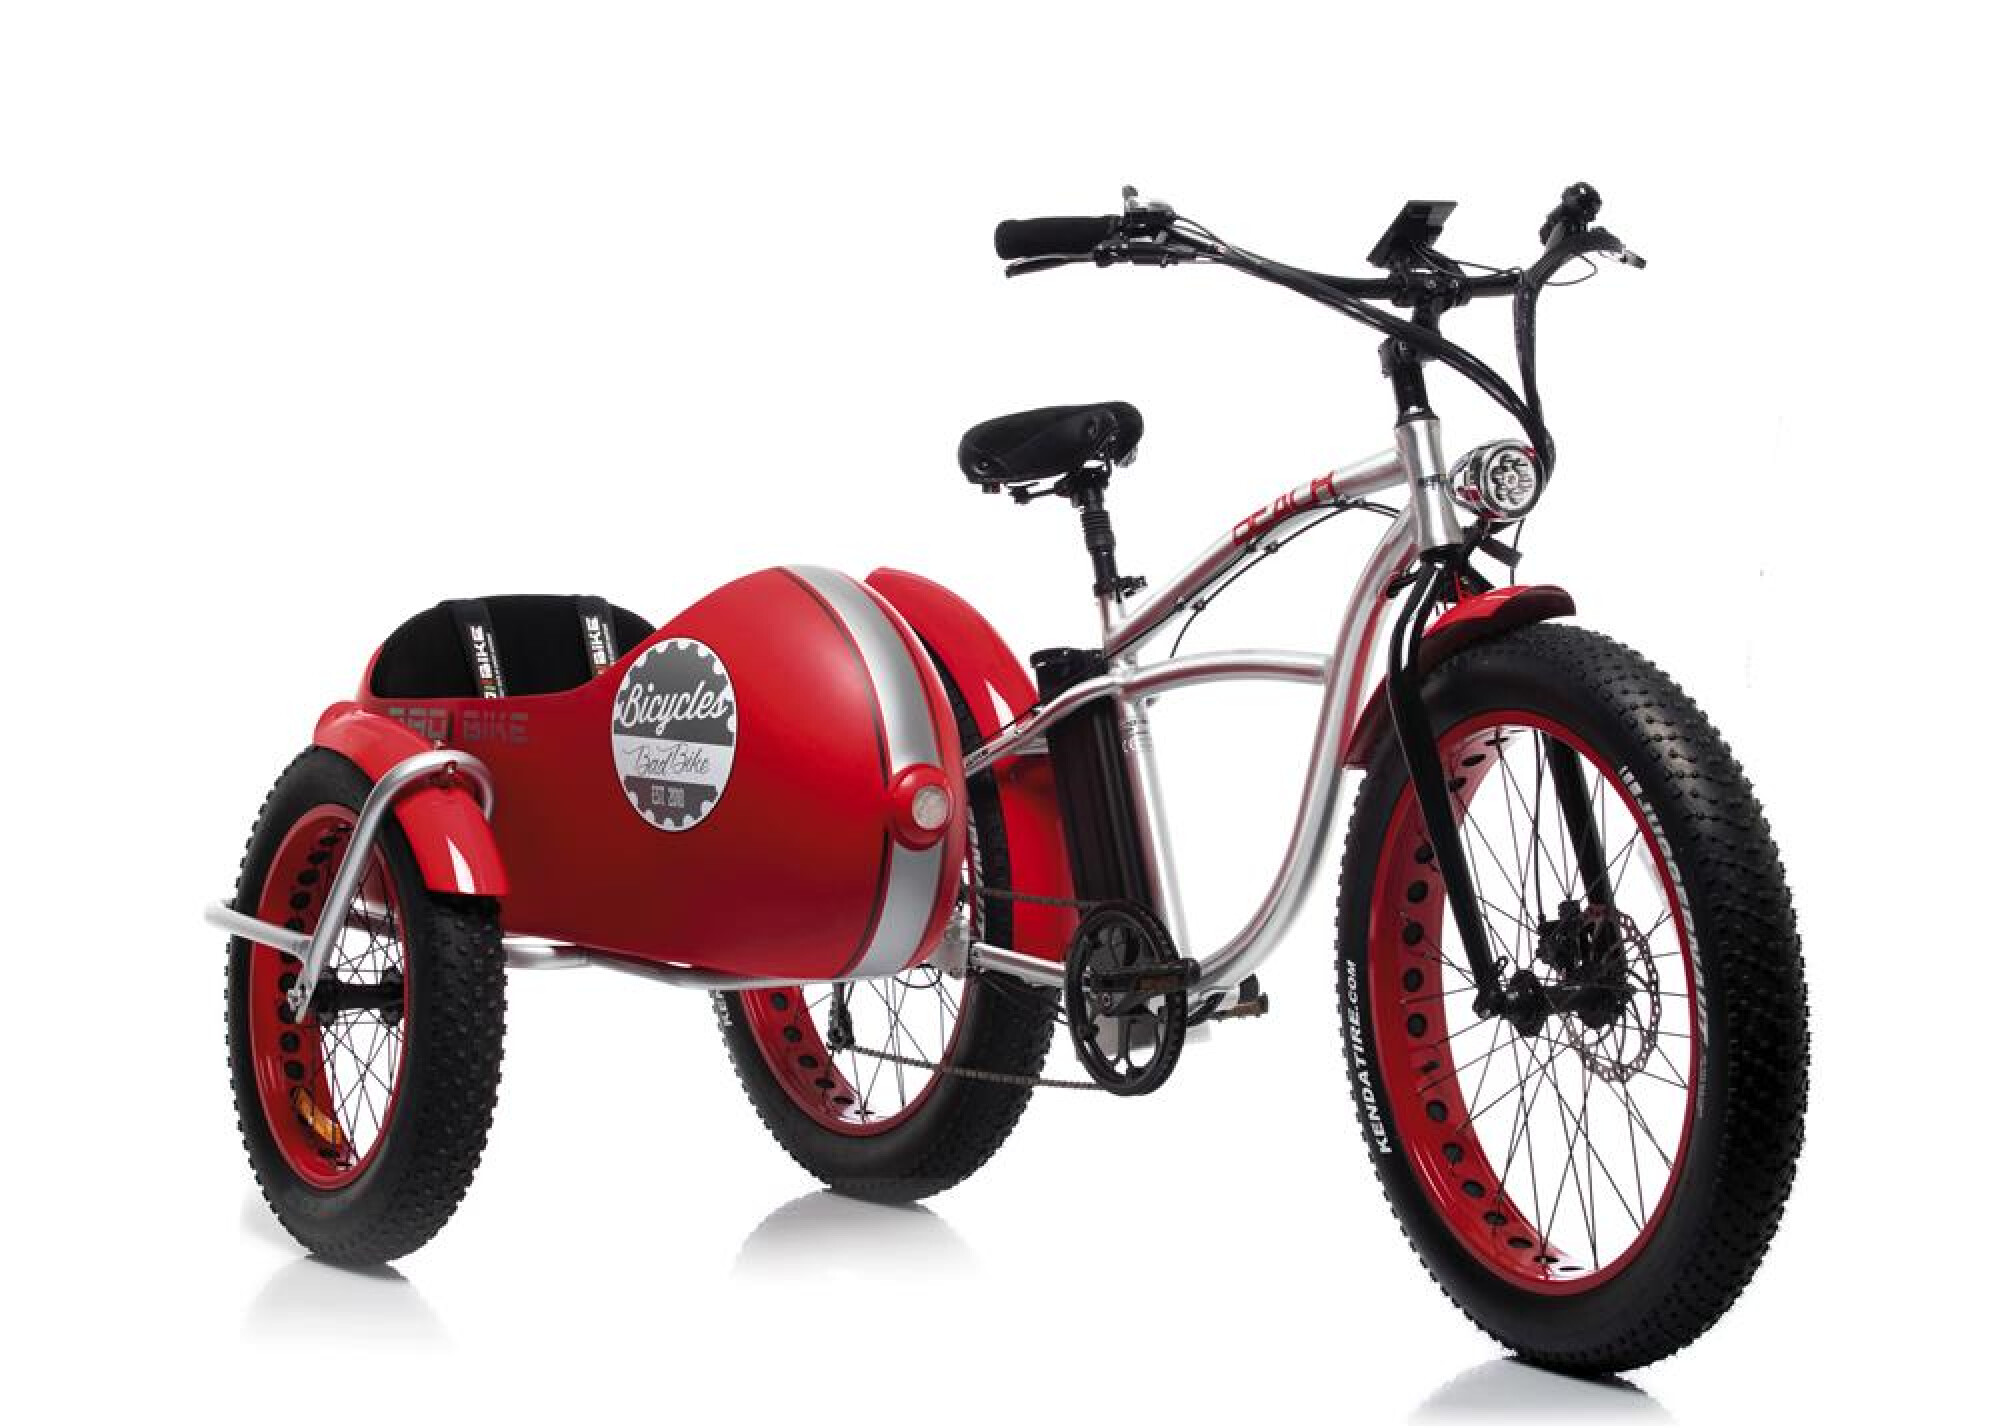 Bad Bike Beach Vintage Side E Bike Bad Bike Beach Vintage Side 250 Or 500w 2017 Bei